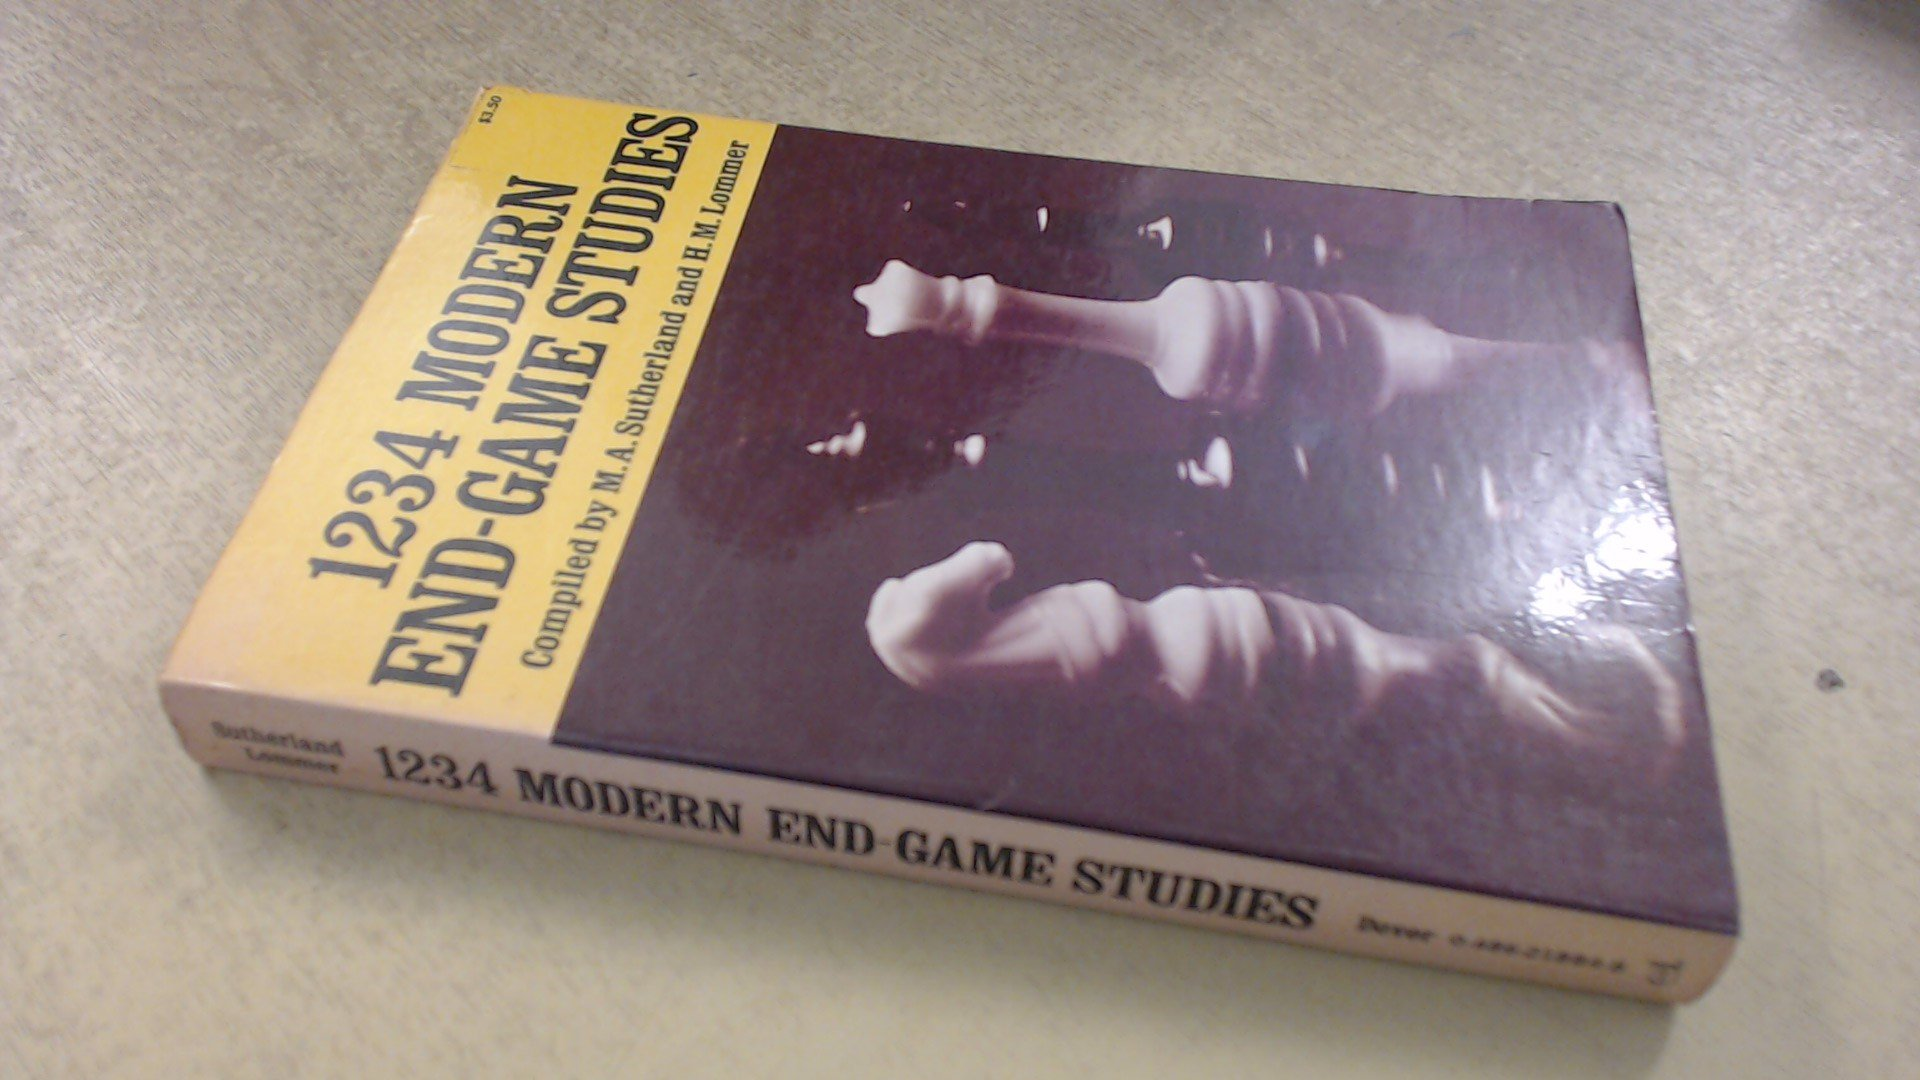 1234 Modern End-Game Studies